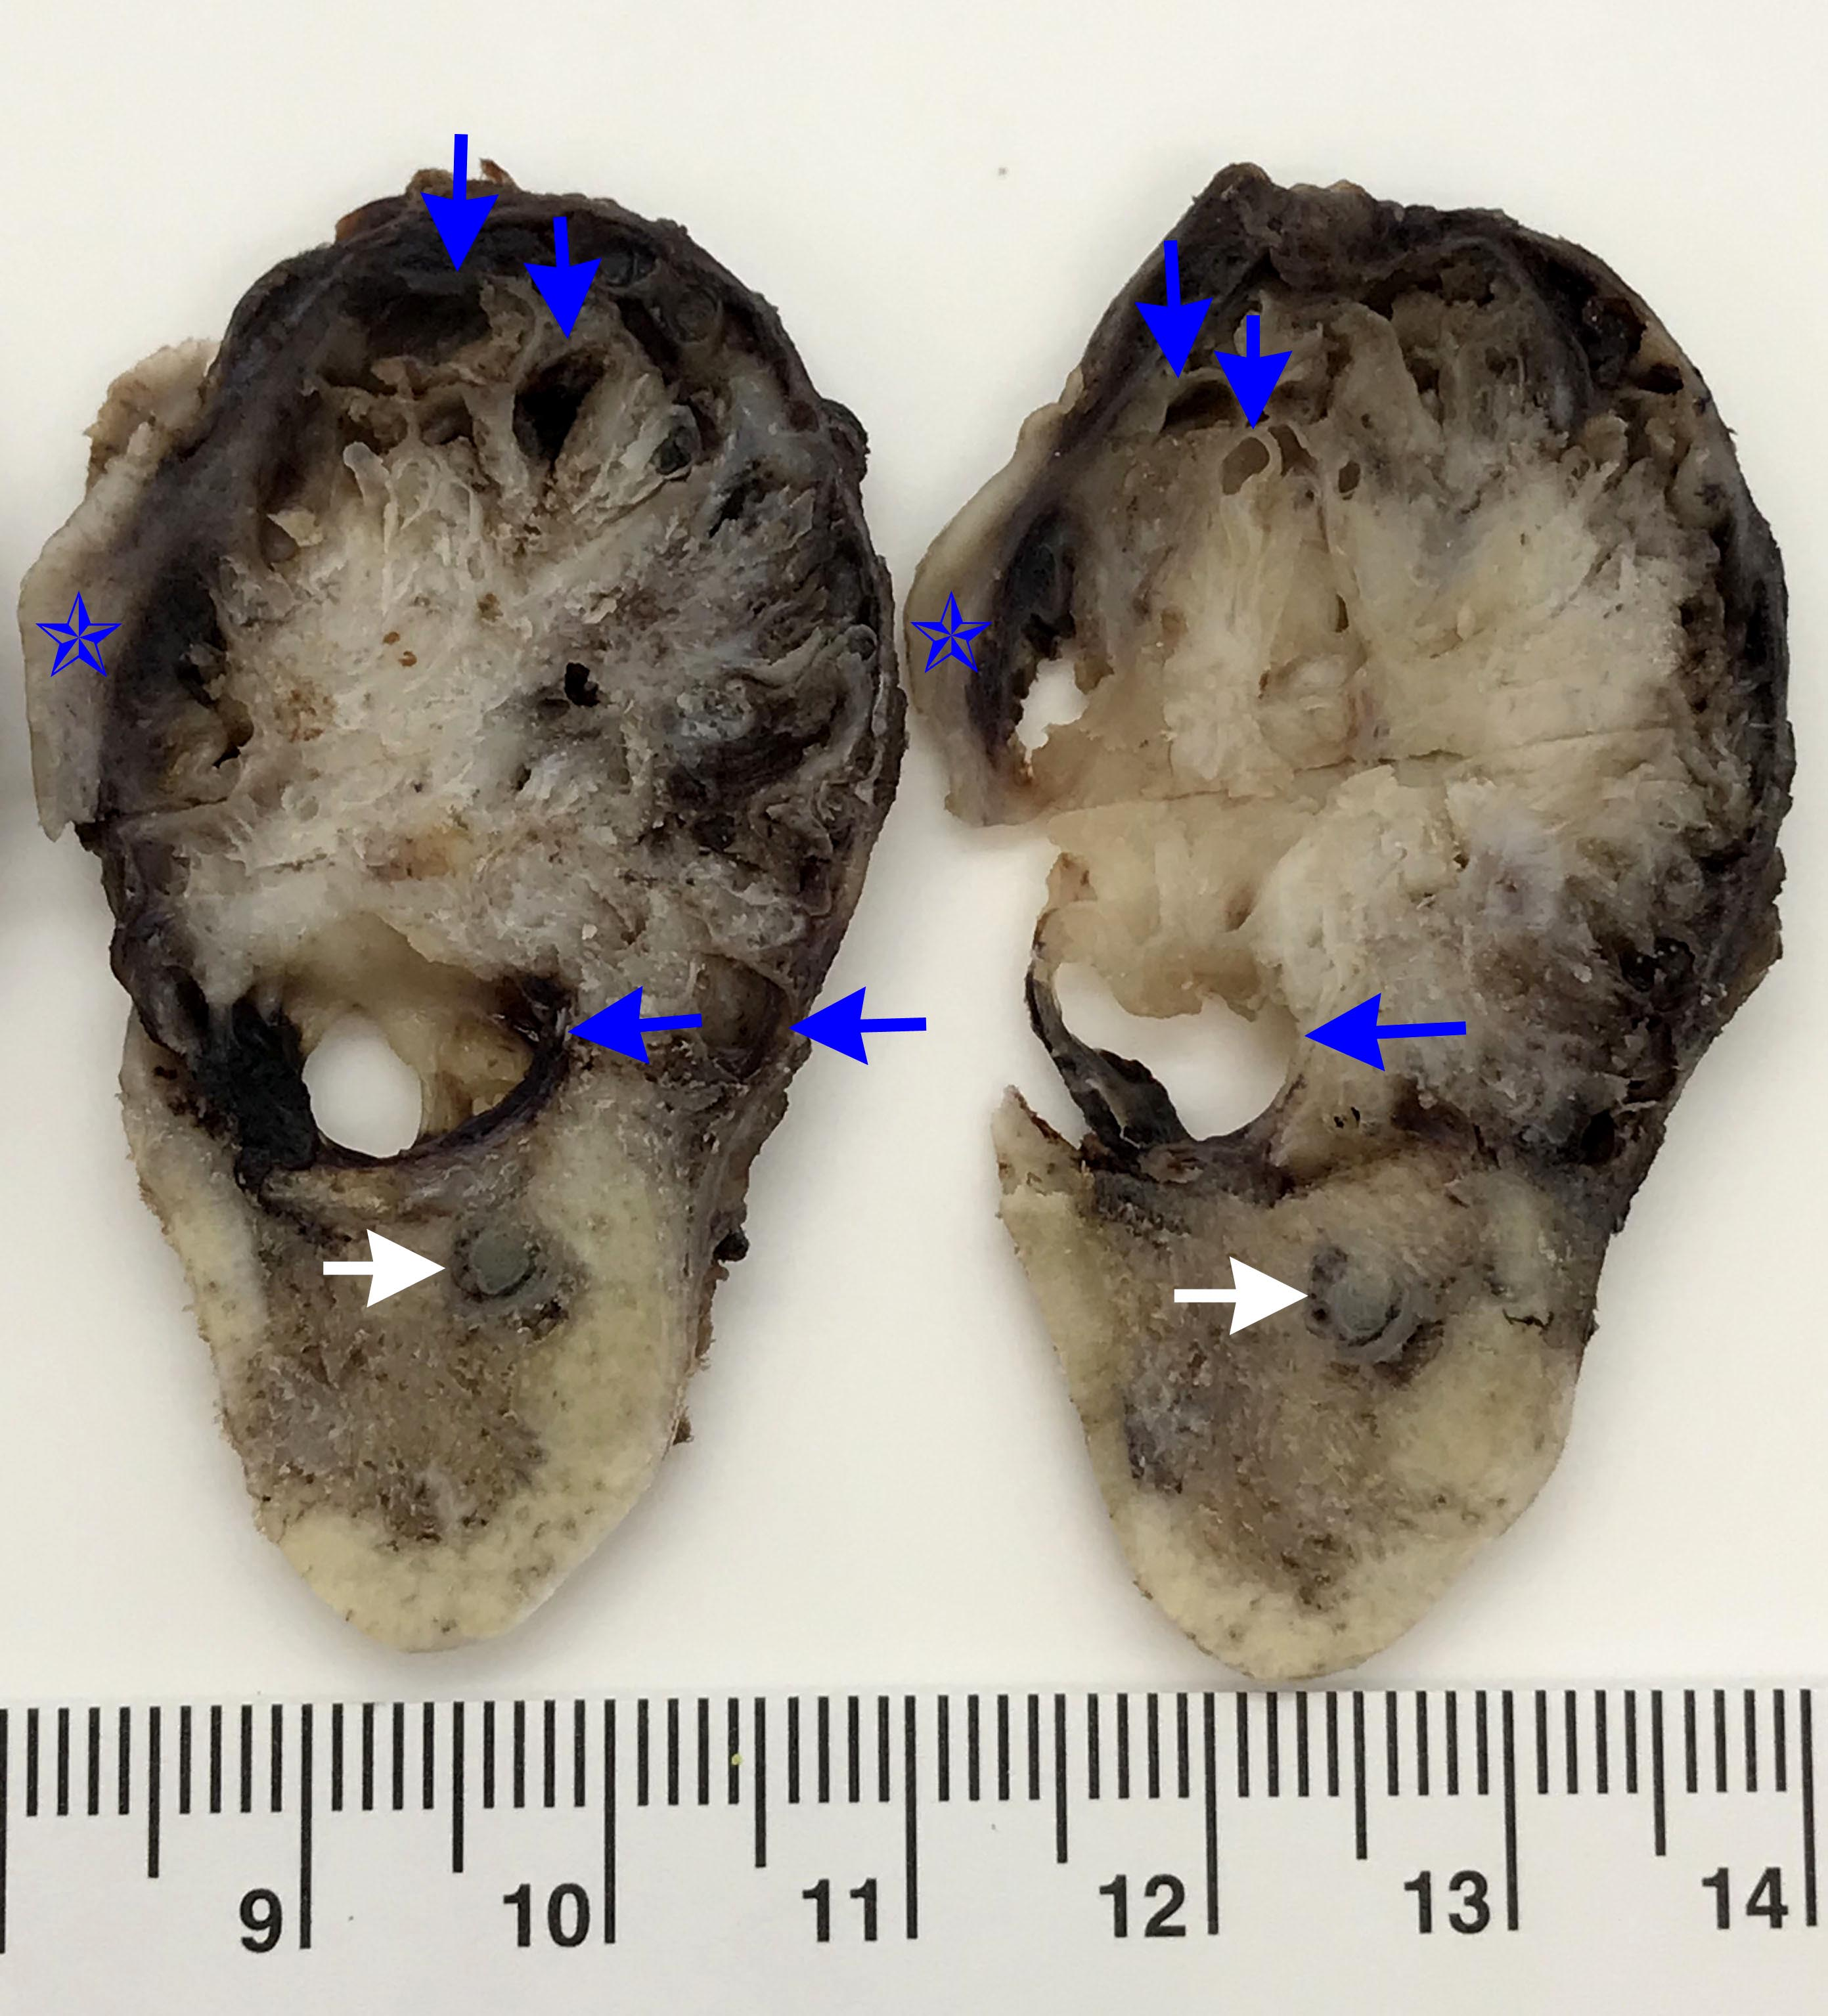 Cross sections of mandible tumor